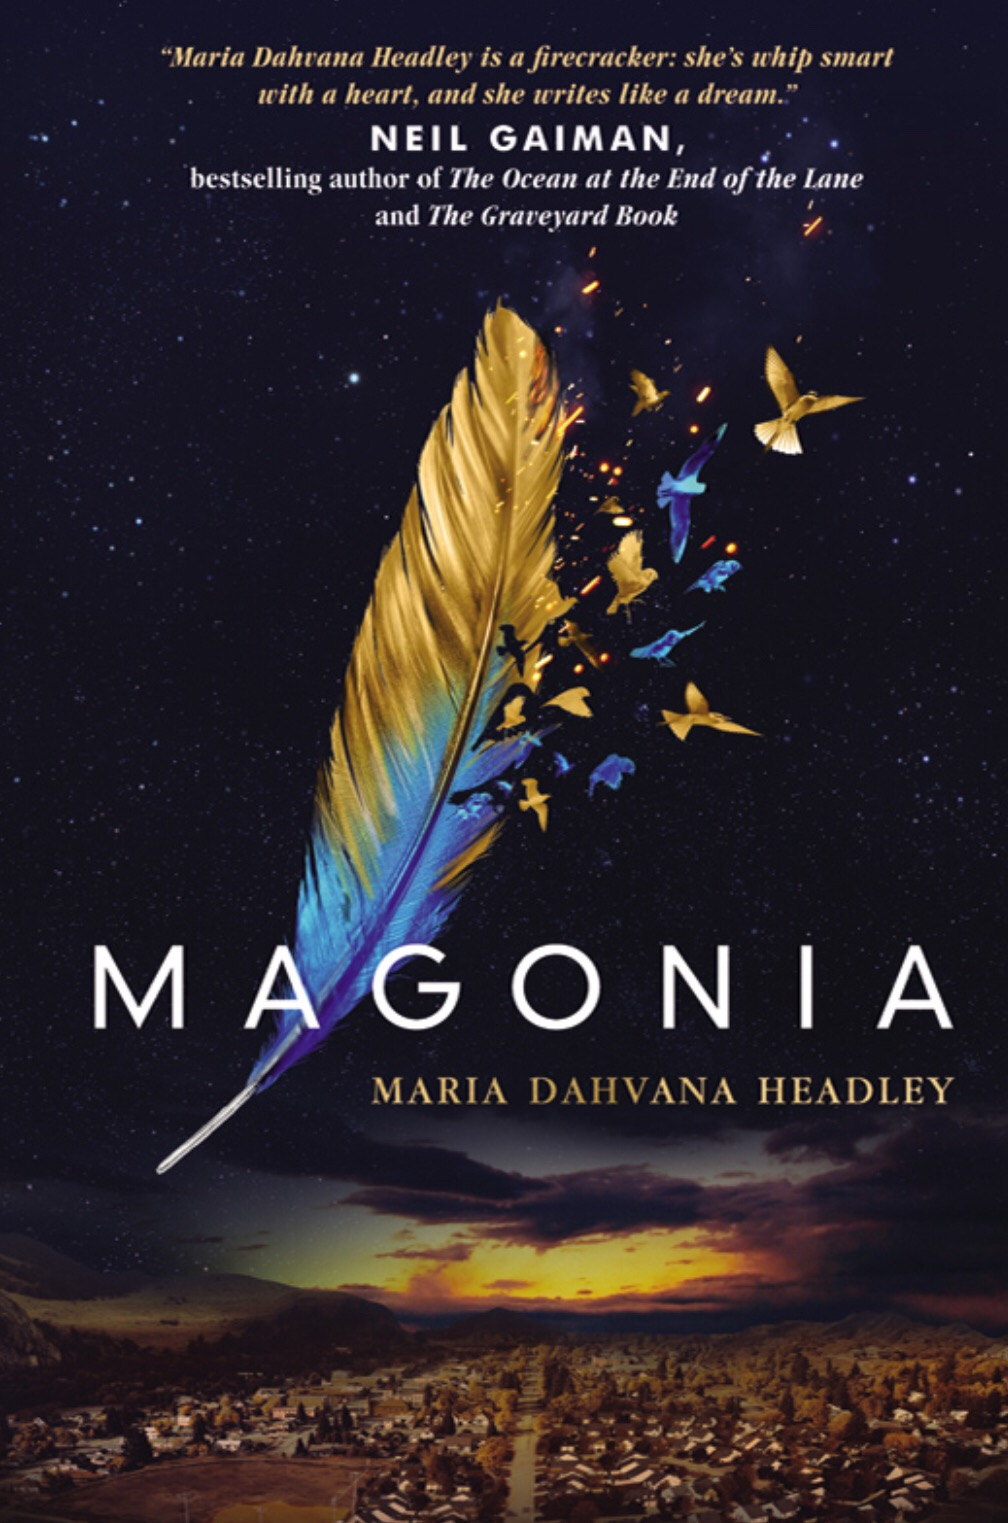 Magonia - By Maria Dahvana Headley | Magonia #1My rating: 3 stars | Pages: 309What made me pick it up: YA book club pickFormat: eBook | Source: Overdrive2018 challenge/s: Goodreads 2018 Reading Challenge;